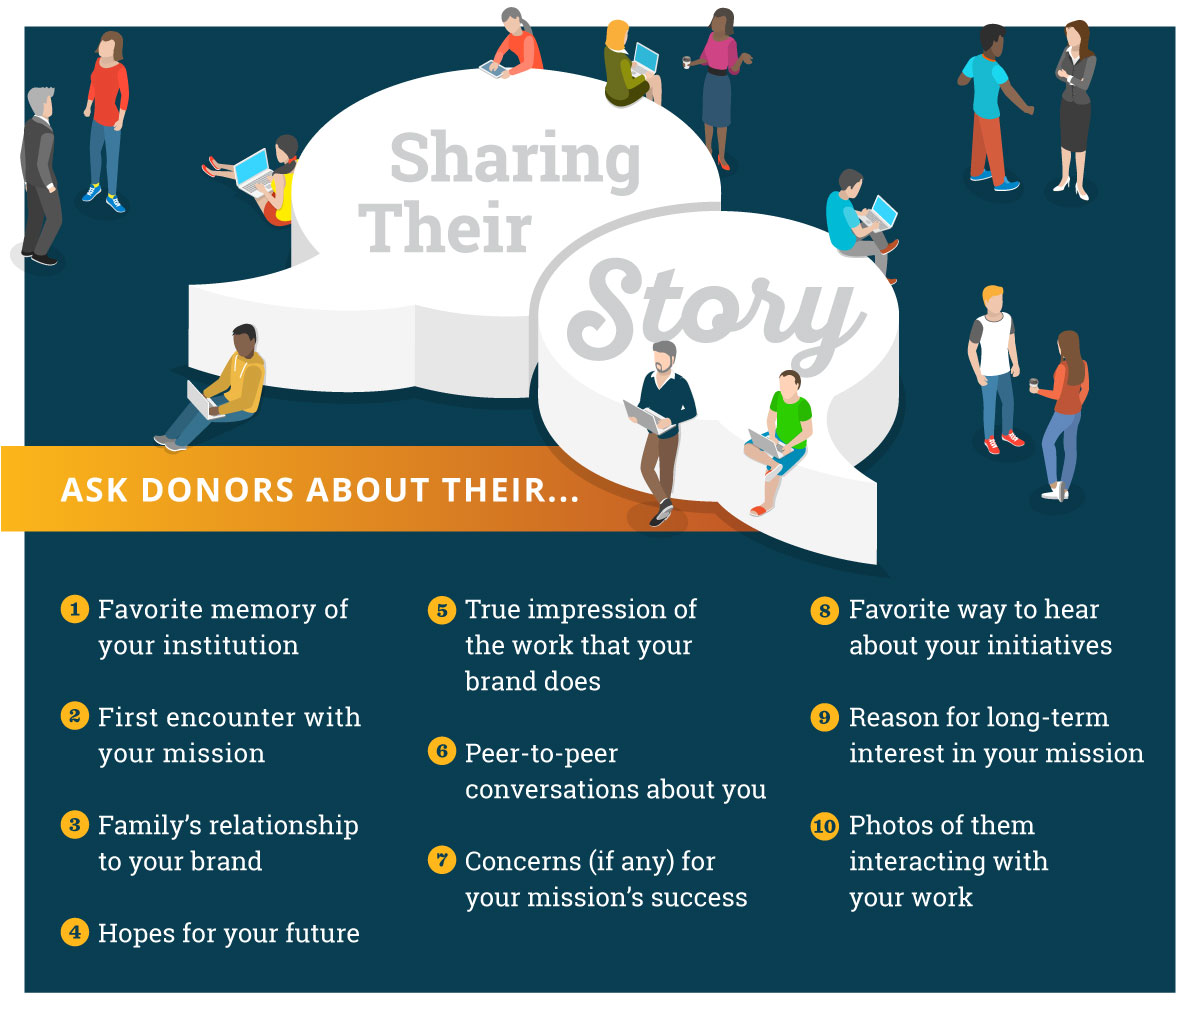 sharing-their-story-infographic.jpg